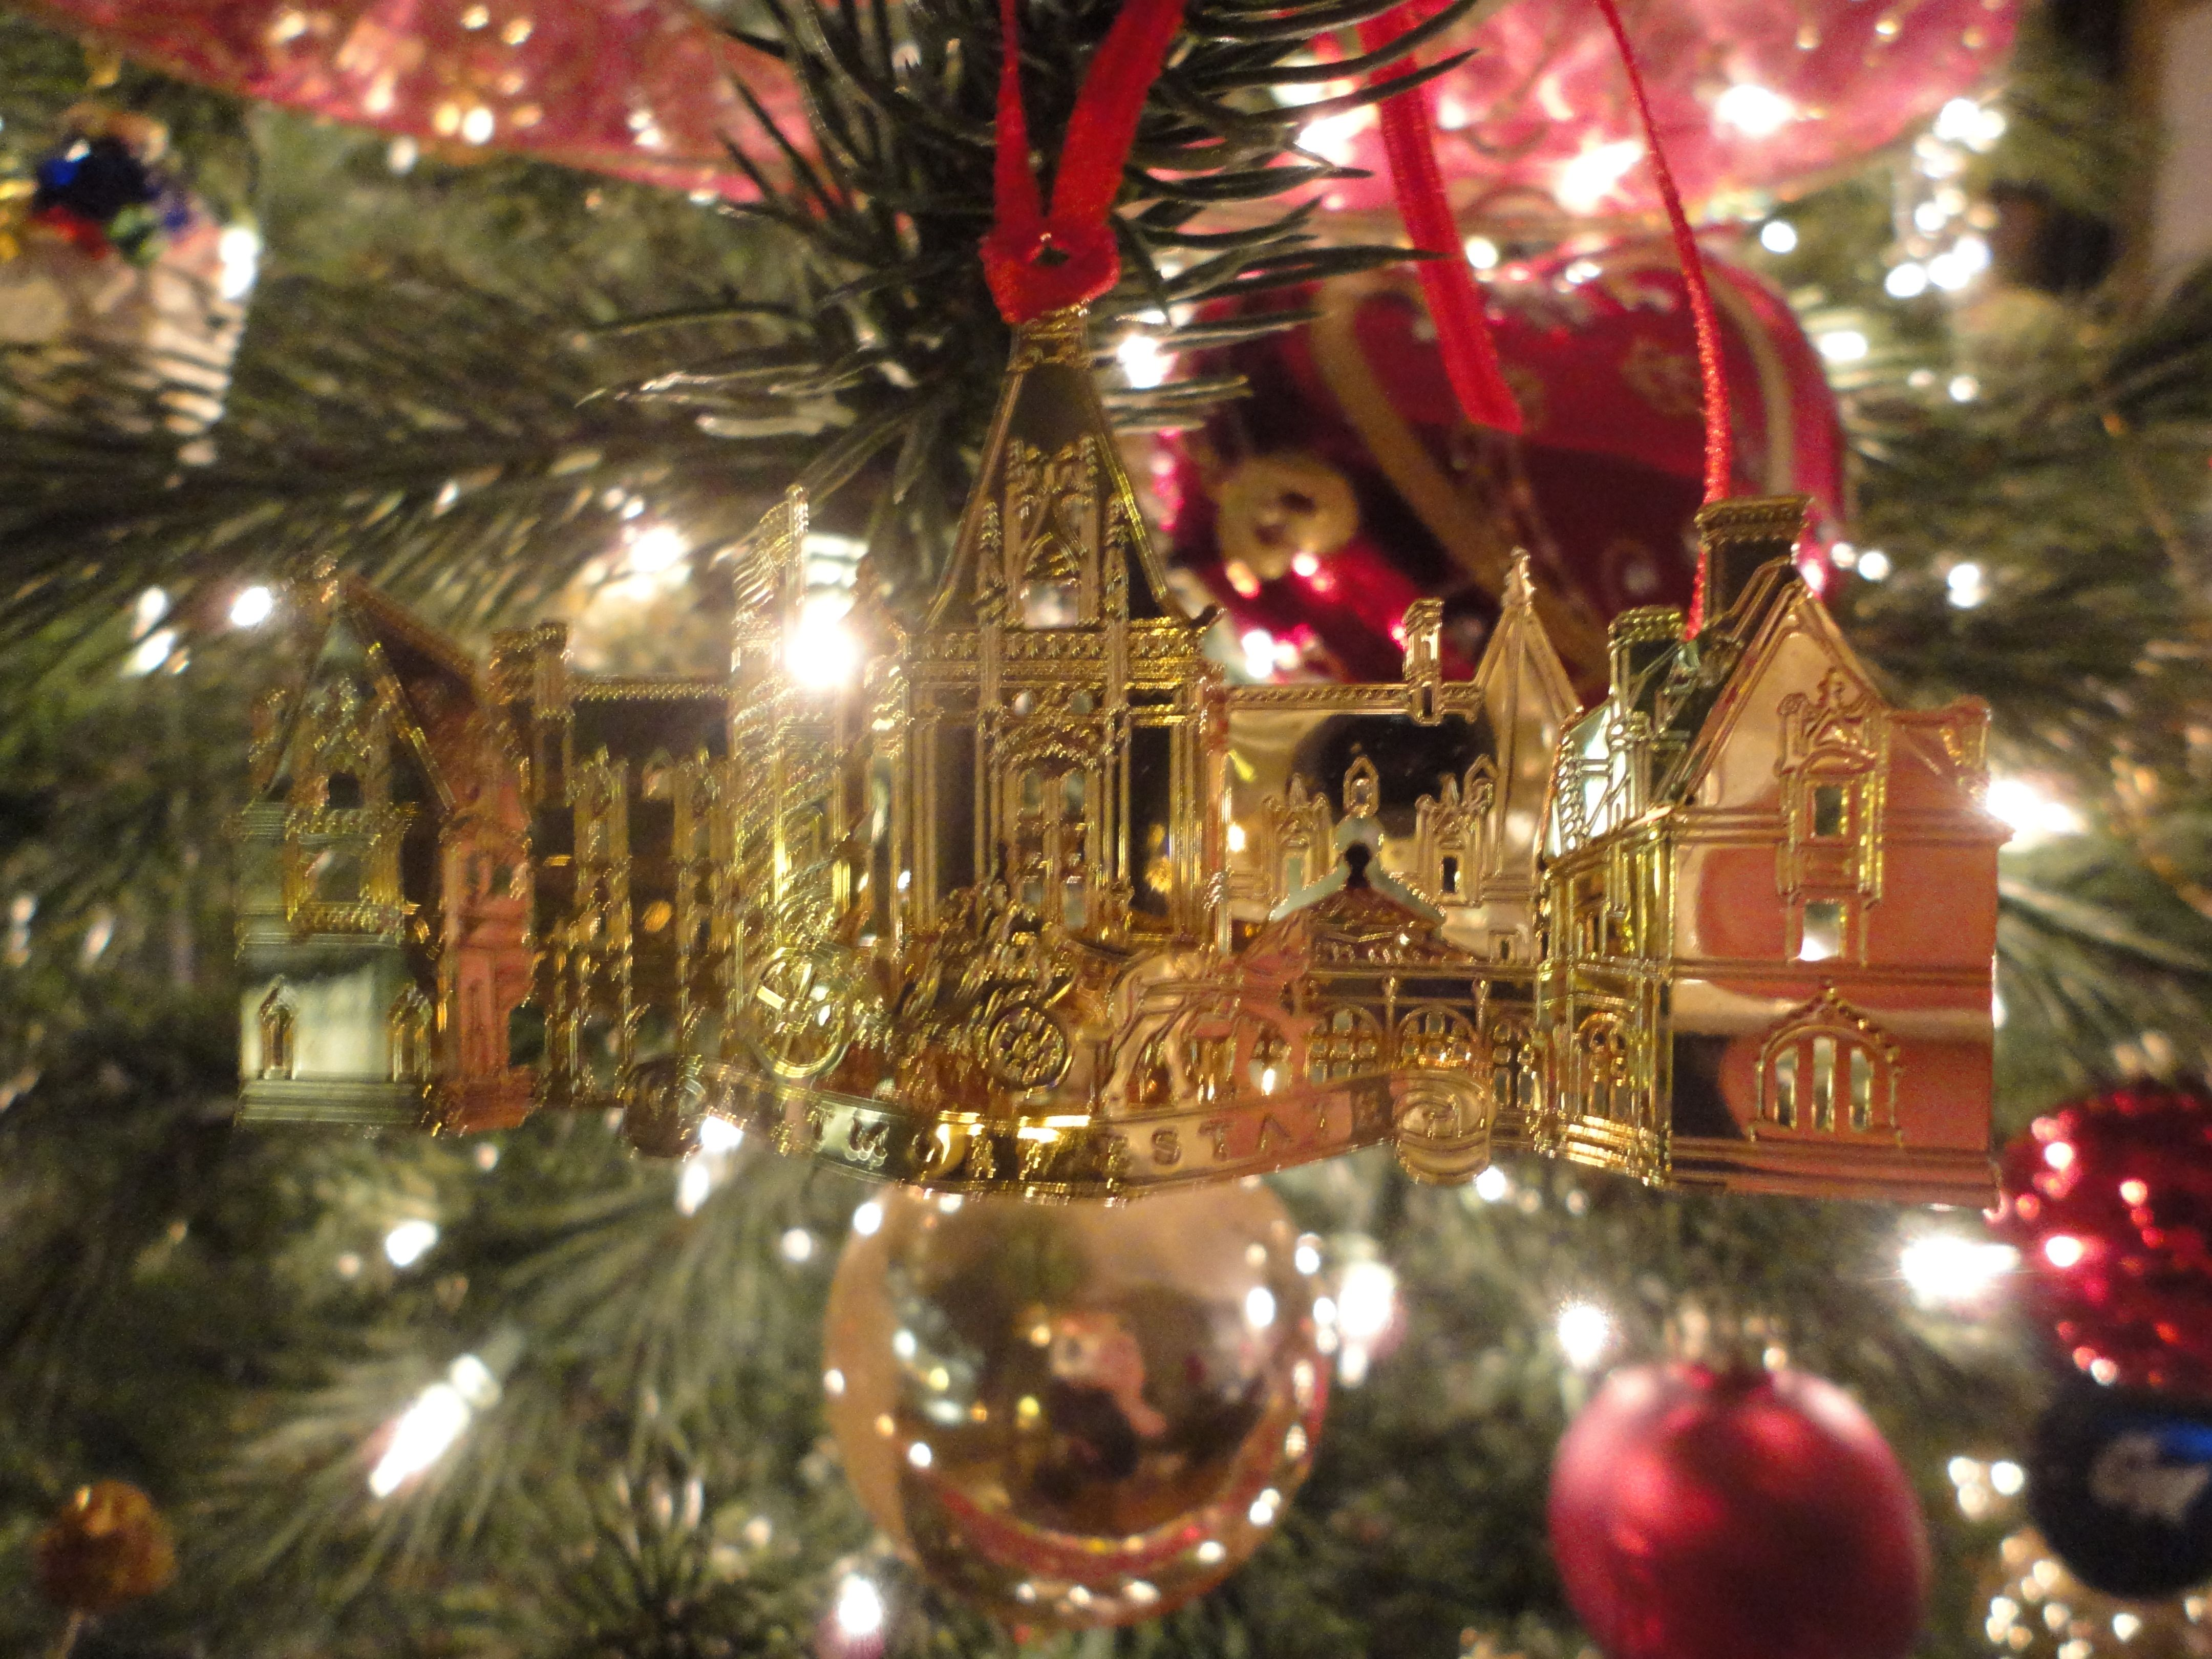 An ornament from the Biltmore in Asheville, NC.